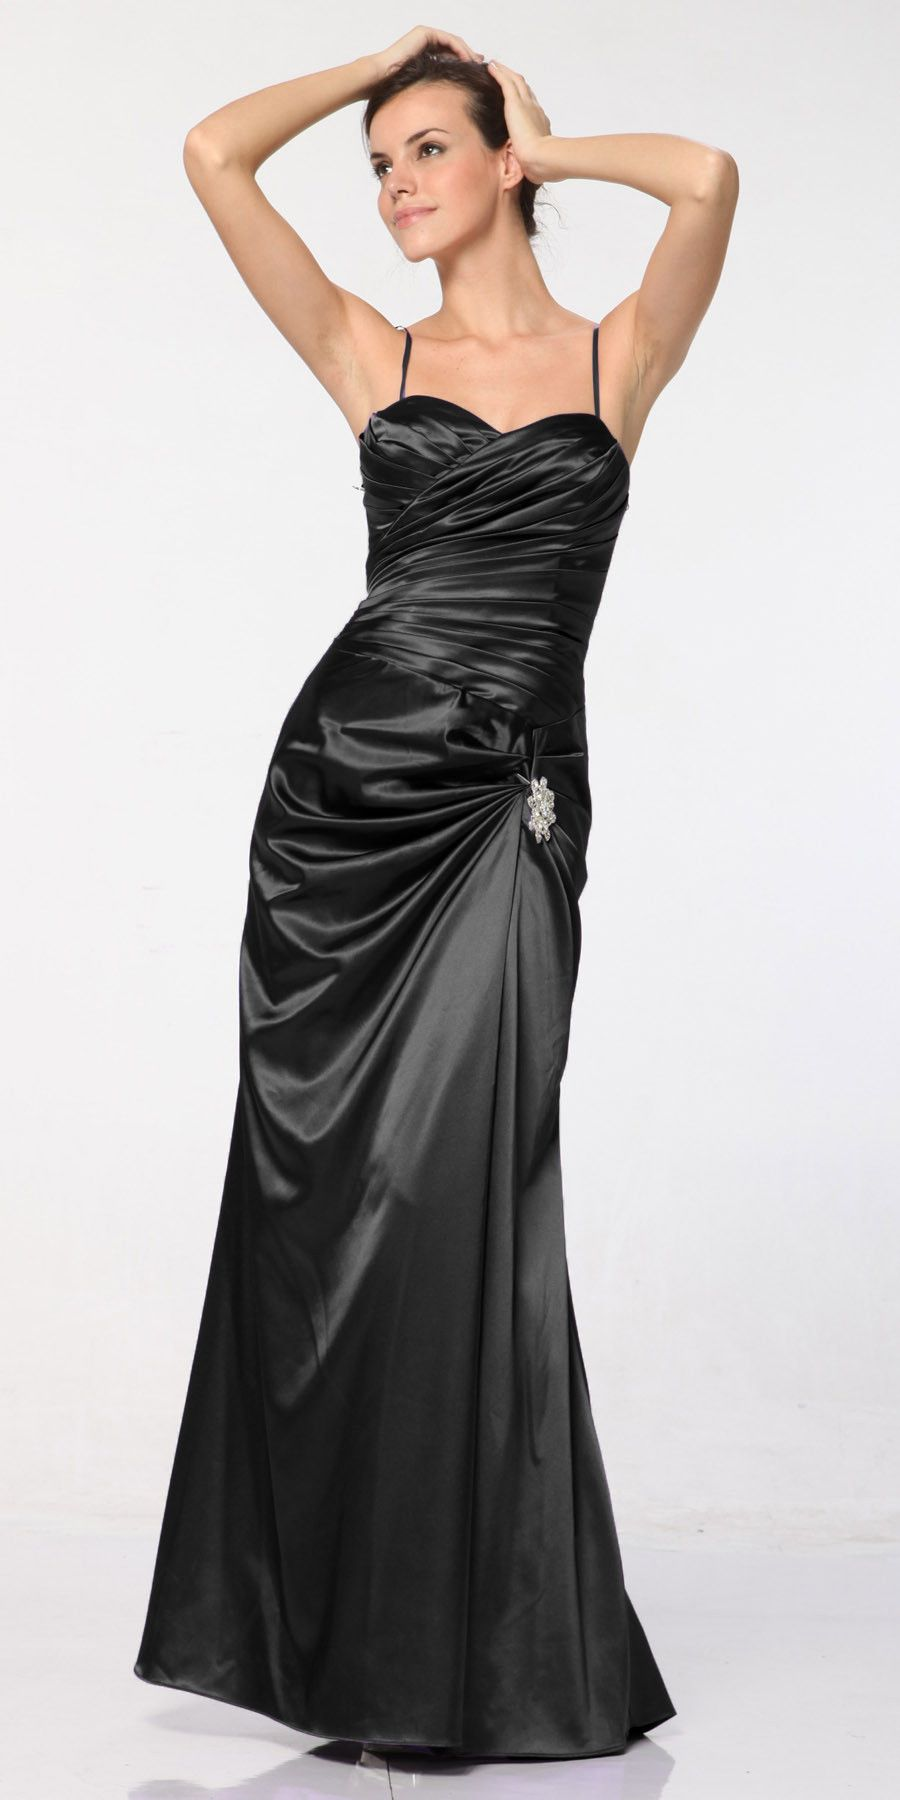 Clearance plus size black satin dress pleated bodice strapless